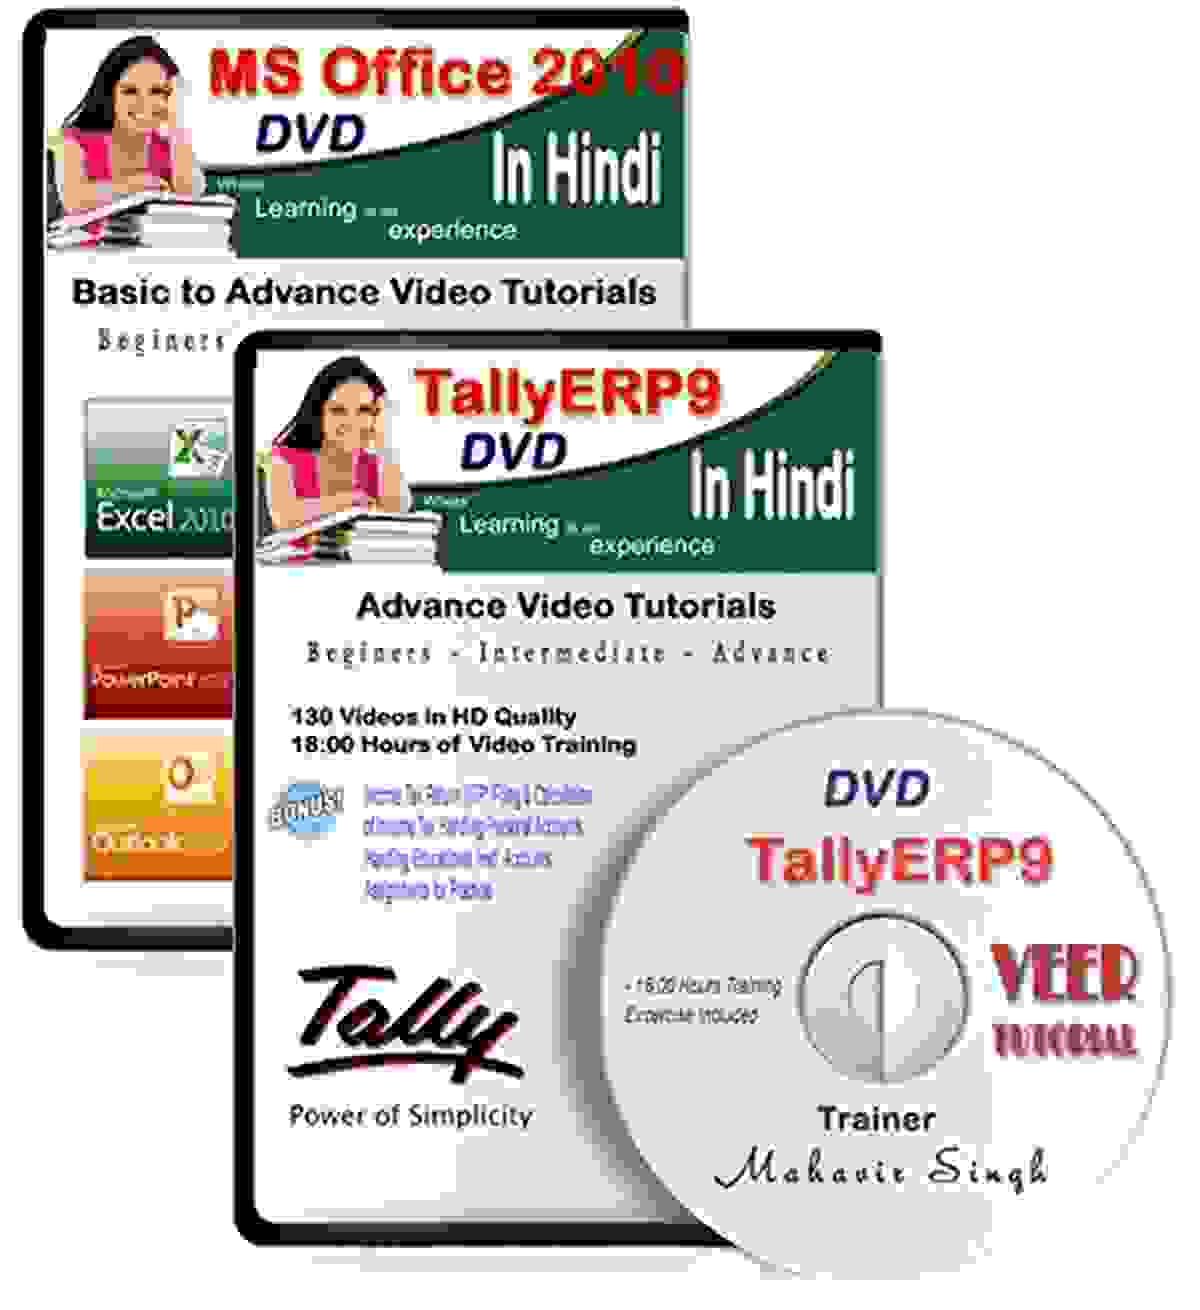 TallyERP9 Tutorail DVD Latest Version with GST + MS Office Latest Version (300 HD Video, 28 Hrs) 2 DVD in Hindi Video